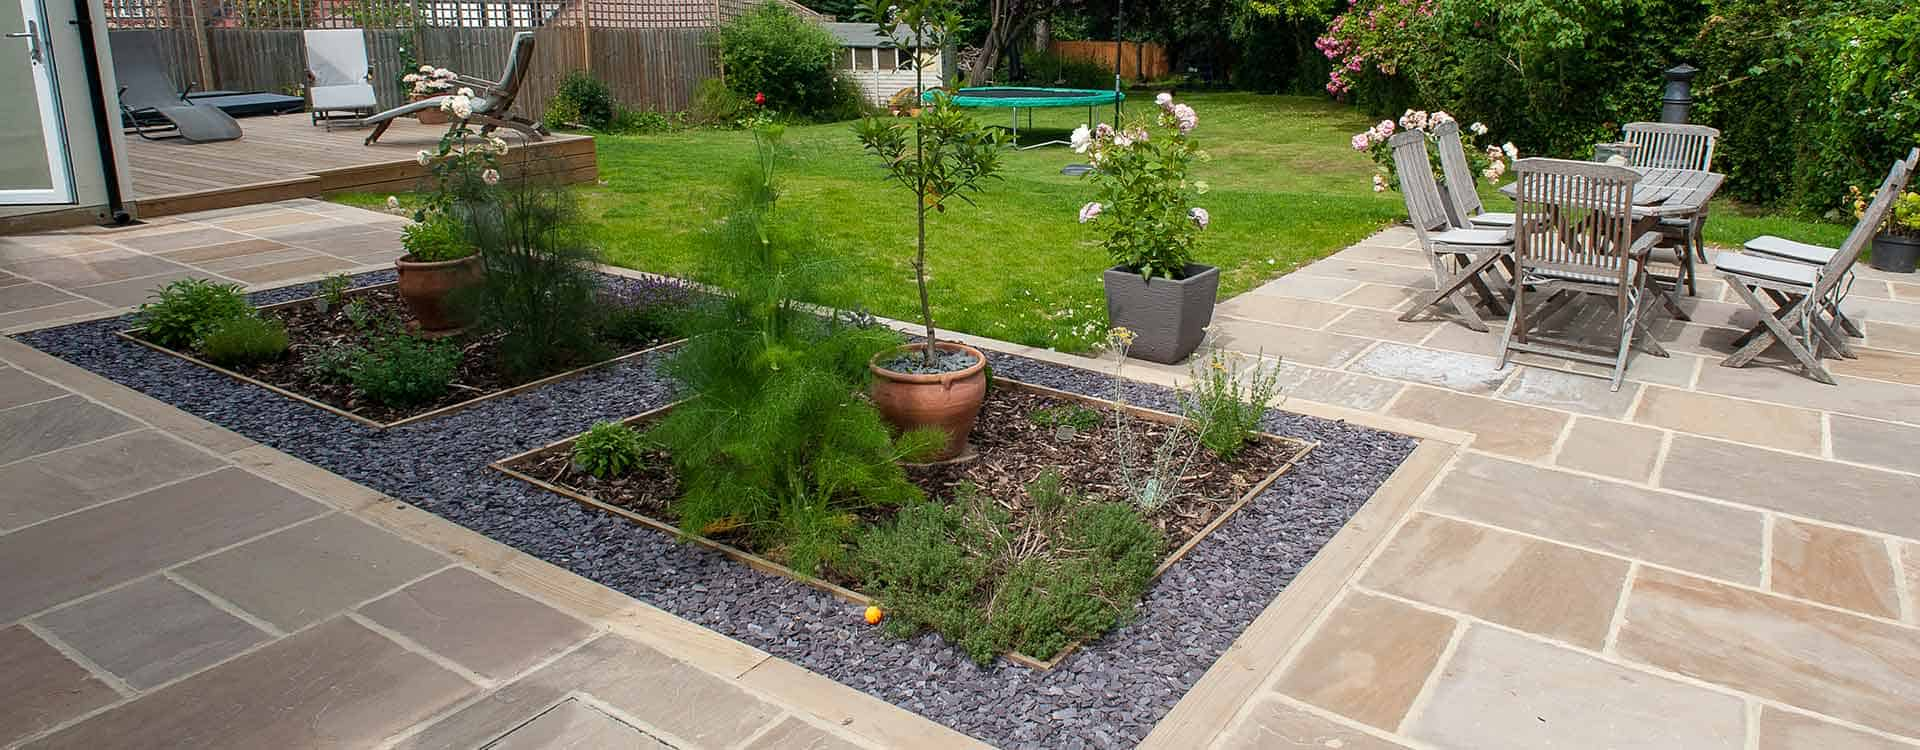 New sandstone paved patio with bedding plant area inset